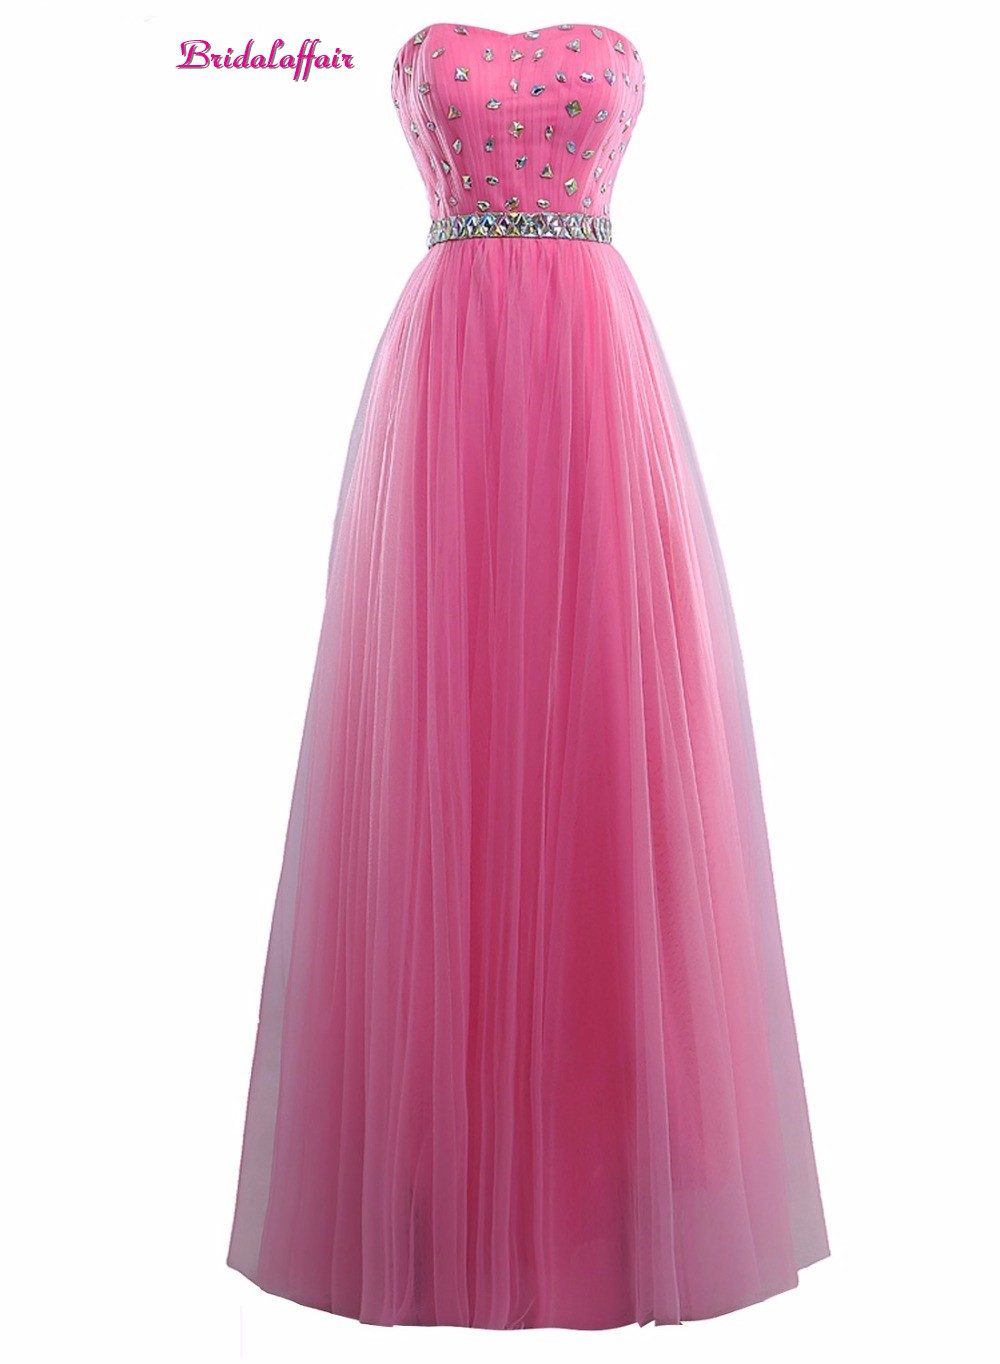 Bridalffair Real Photo Simple Pink Tulle Crystal Strapless   Prom     Dresses   2017 Robe de soiree Cheap Lace up Party Gown with Sashes